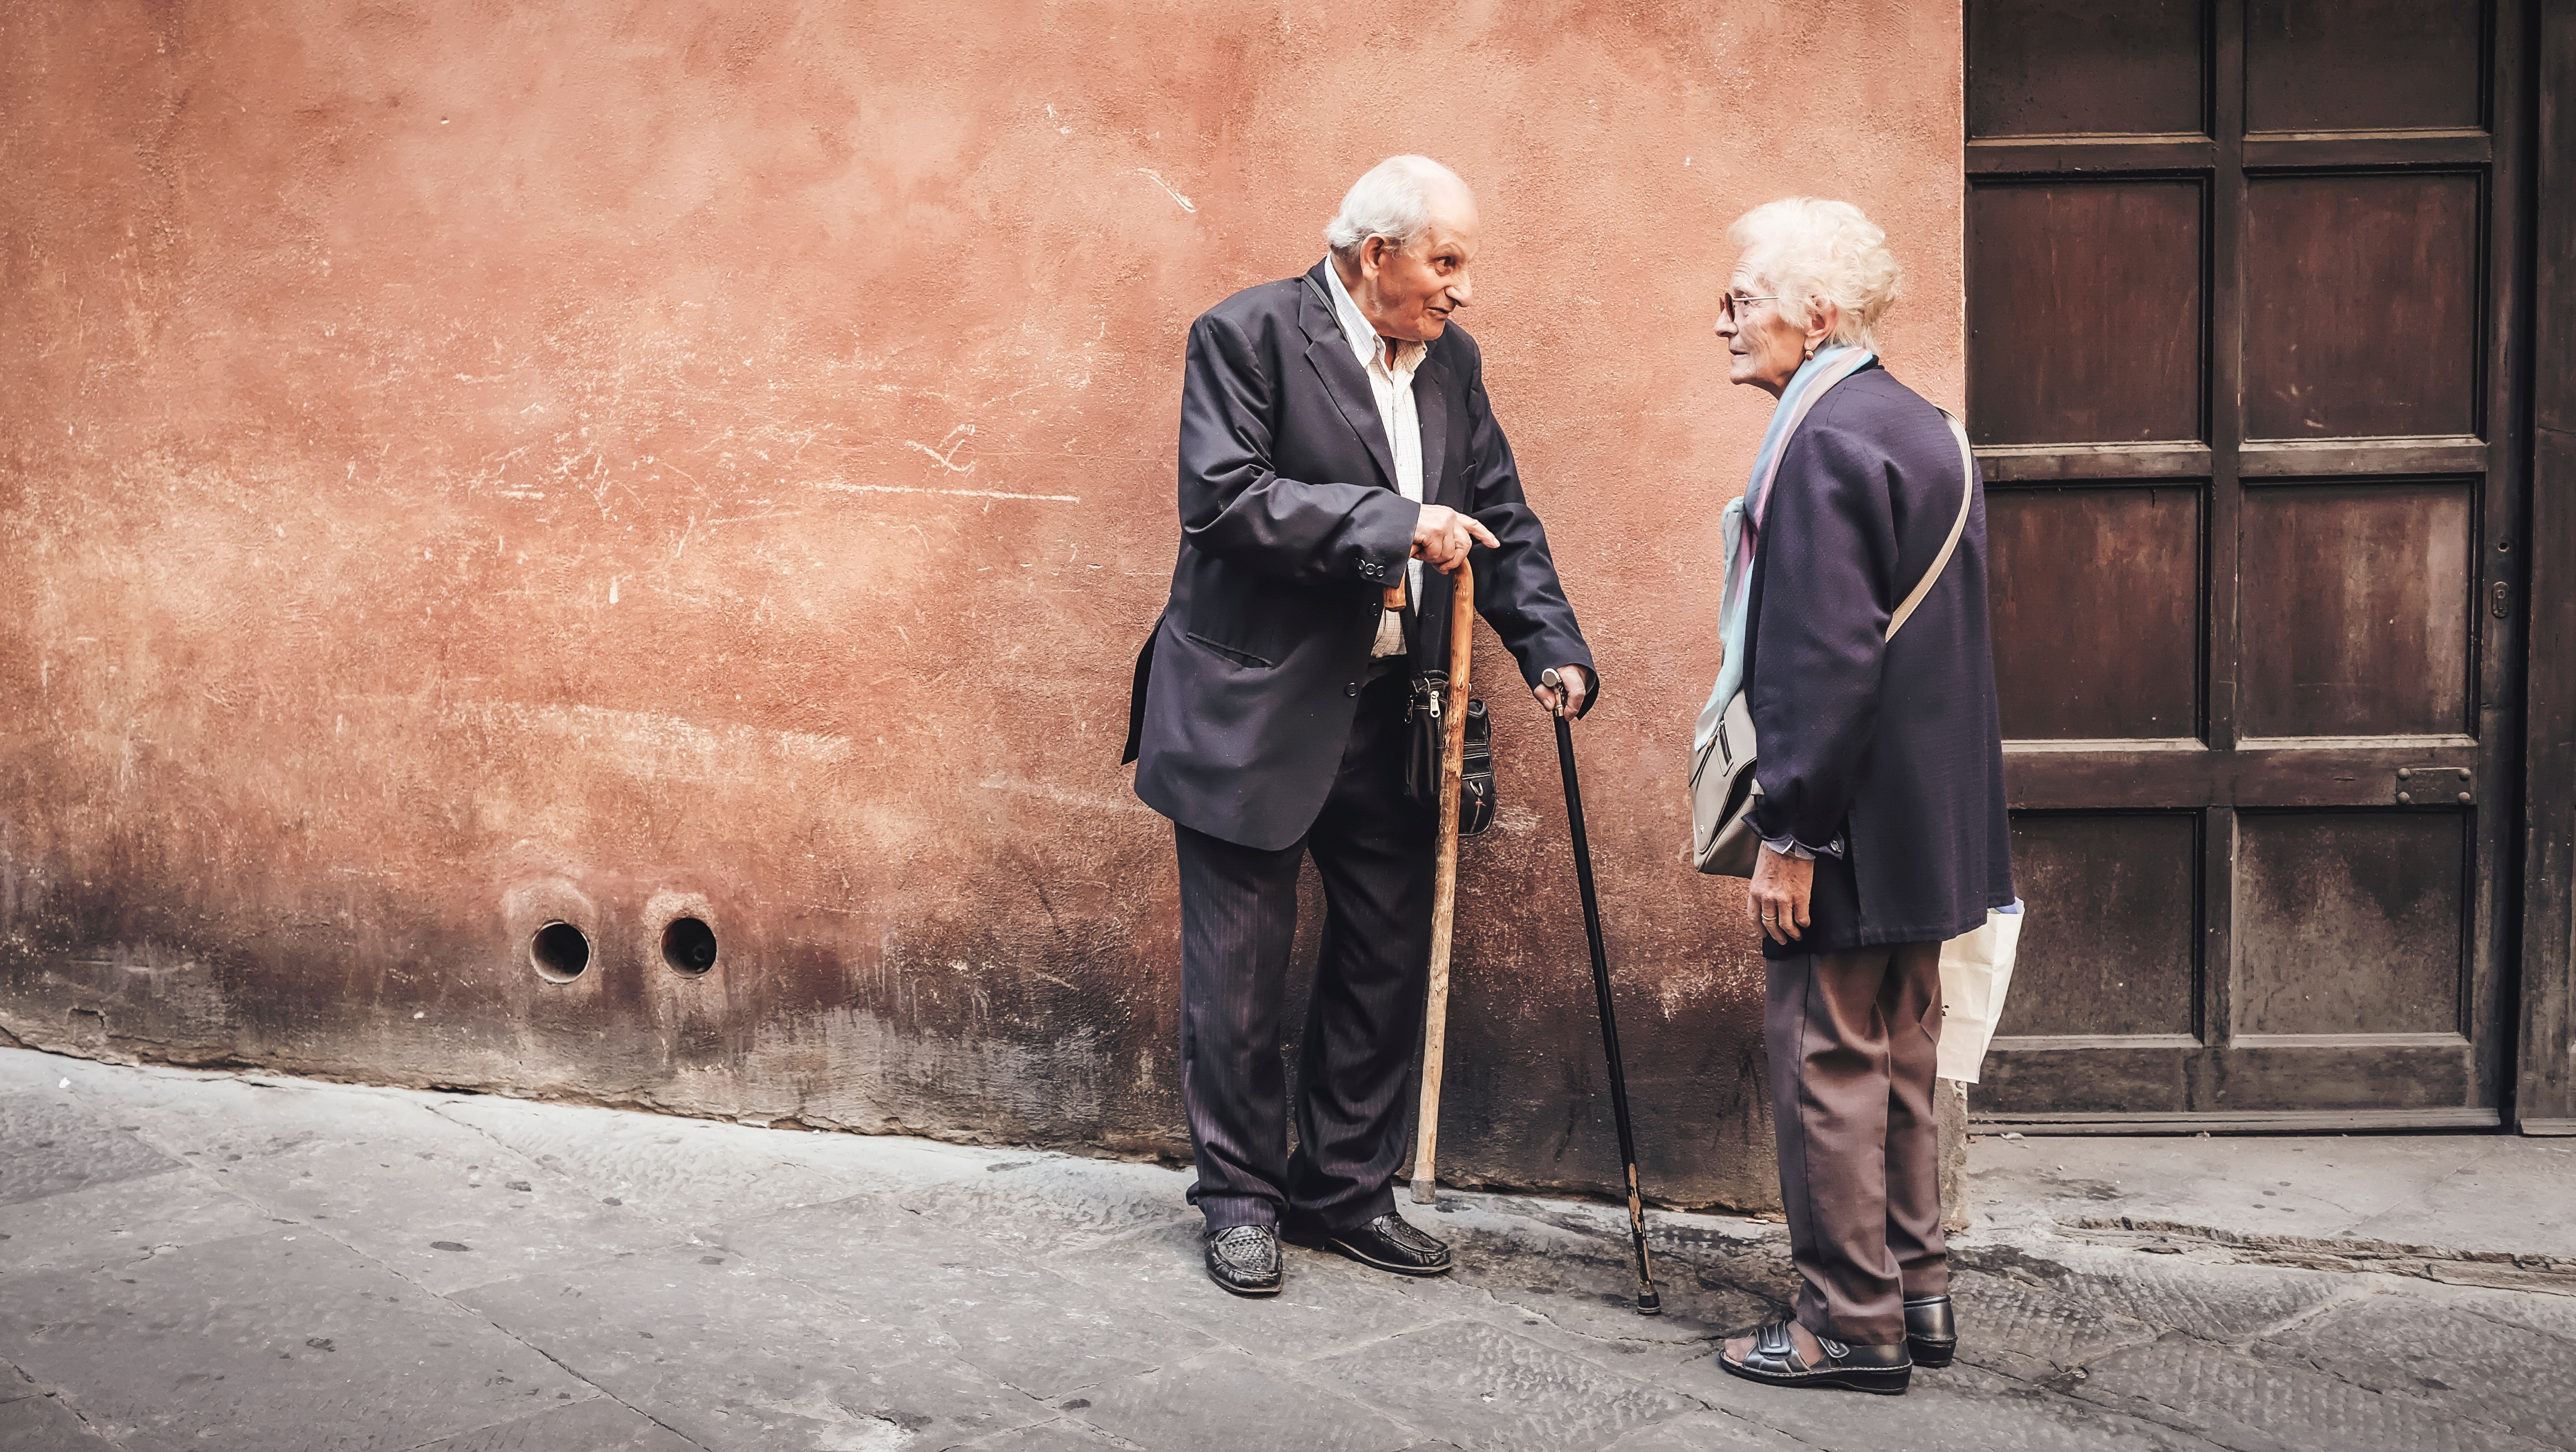 Rethinking care for older people through the lens of disability policies